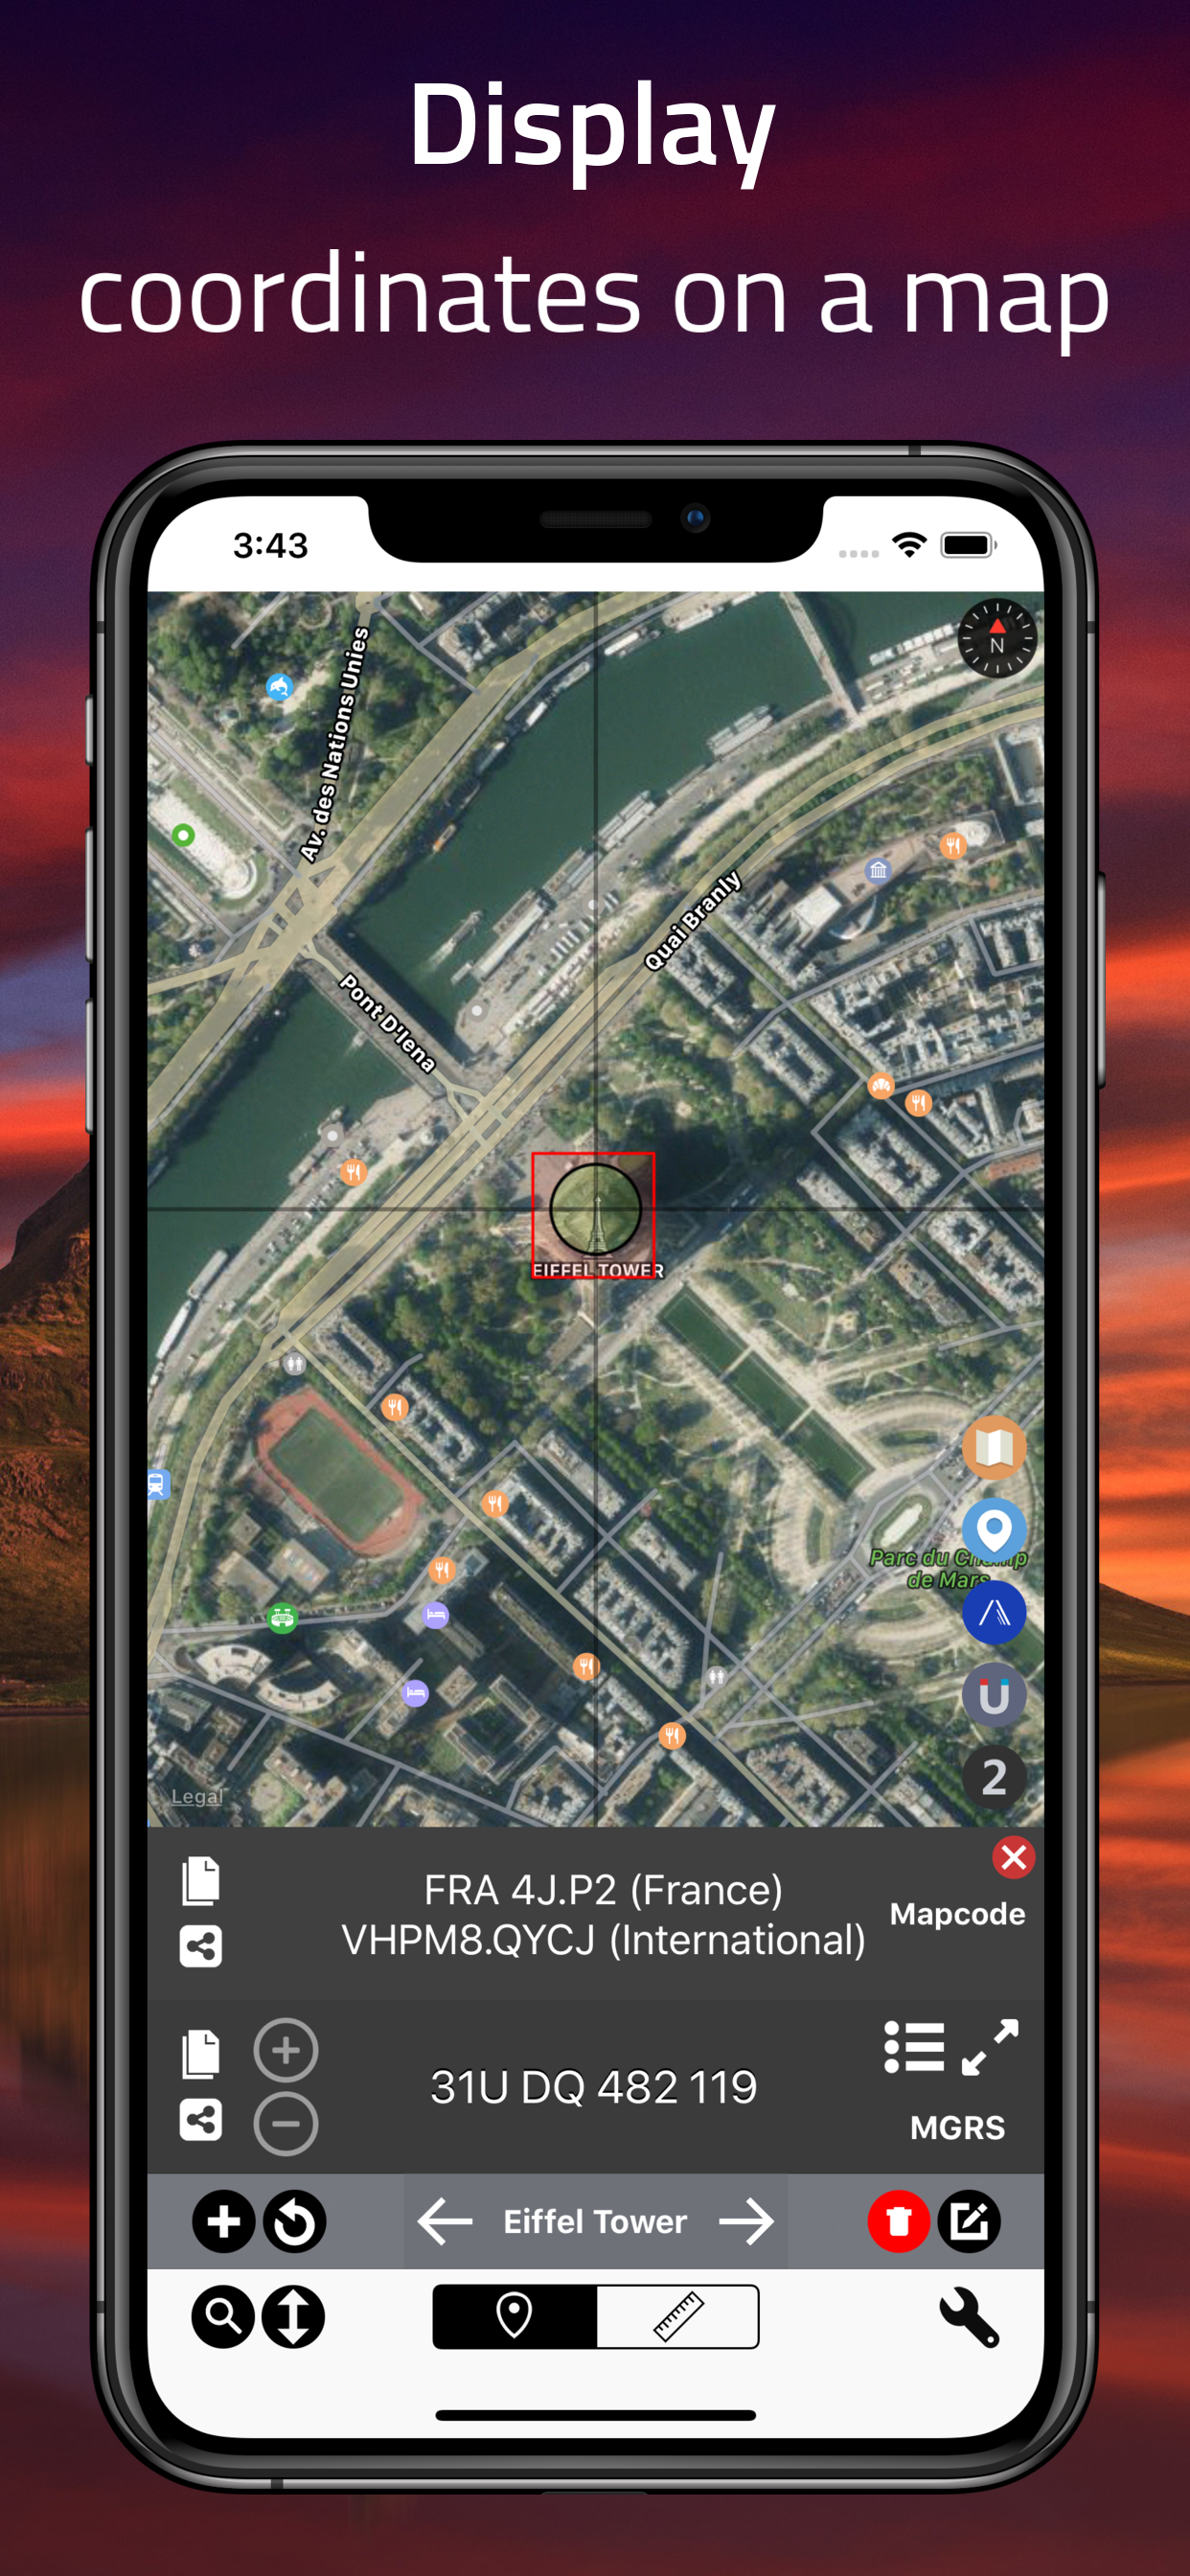 iPhone Xs Max-01Coordinates - Display_framed.png